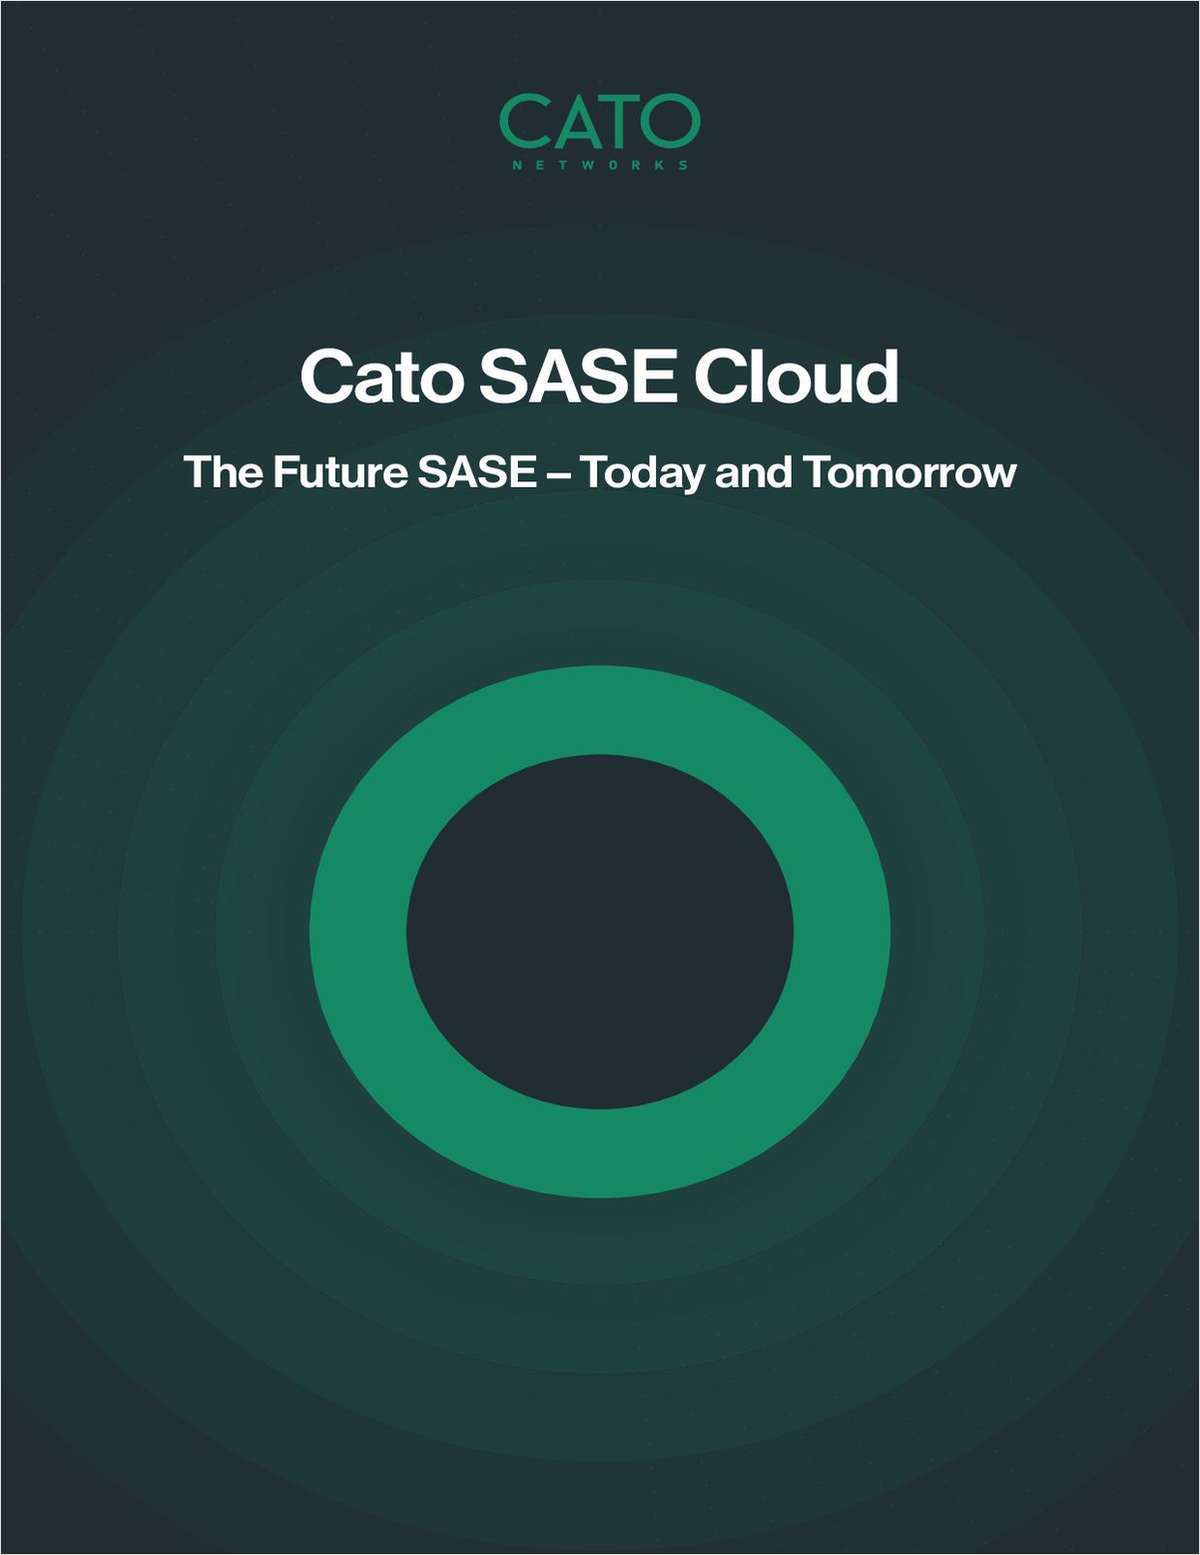 Cato SASE Cloud: The Future SASE -- Today and Tomorrowe